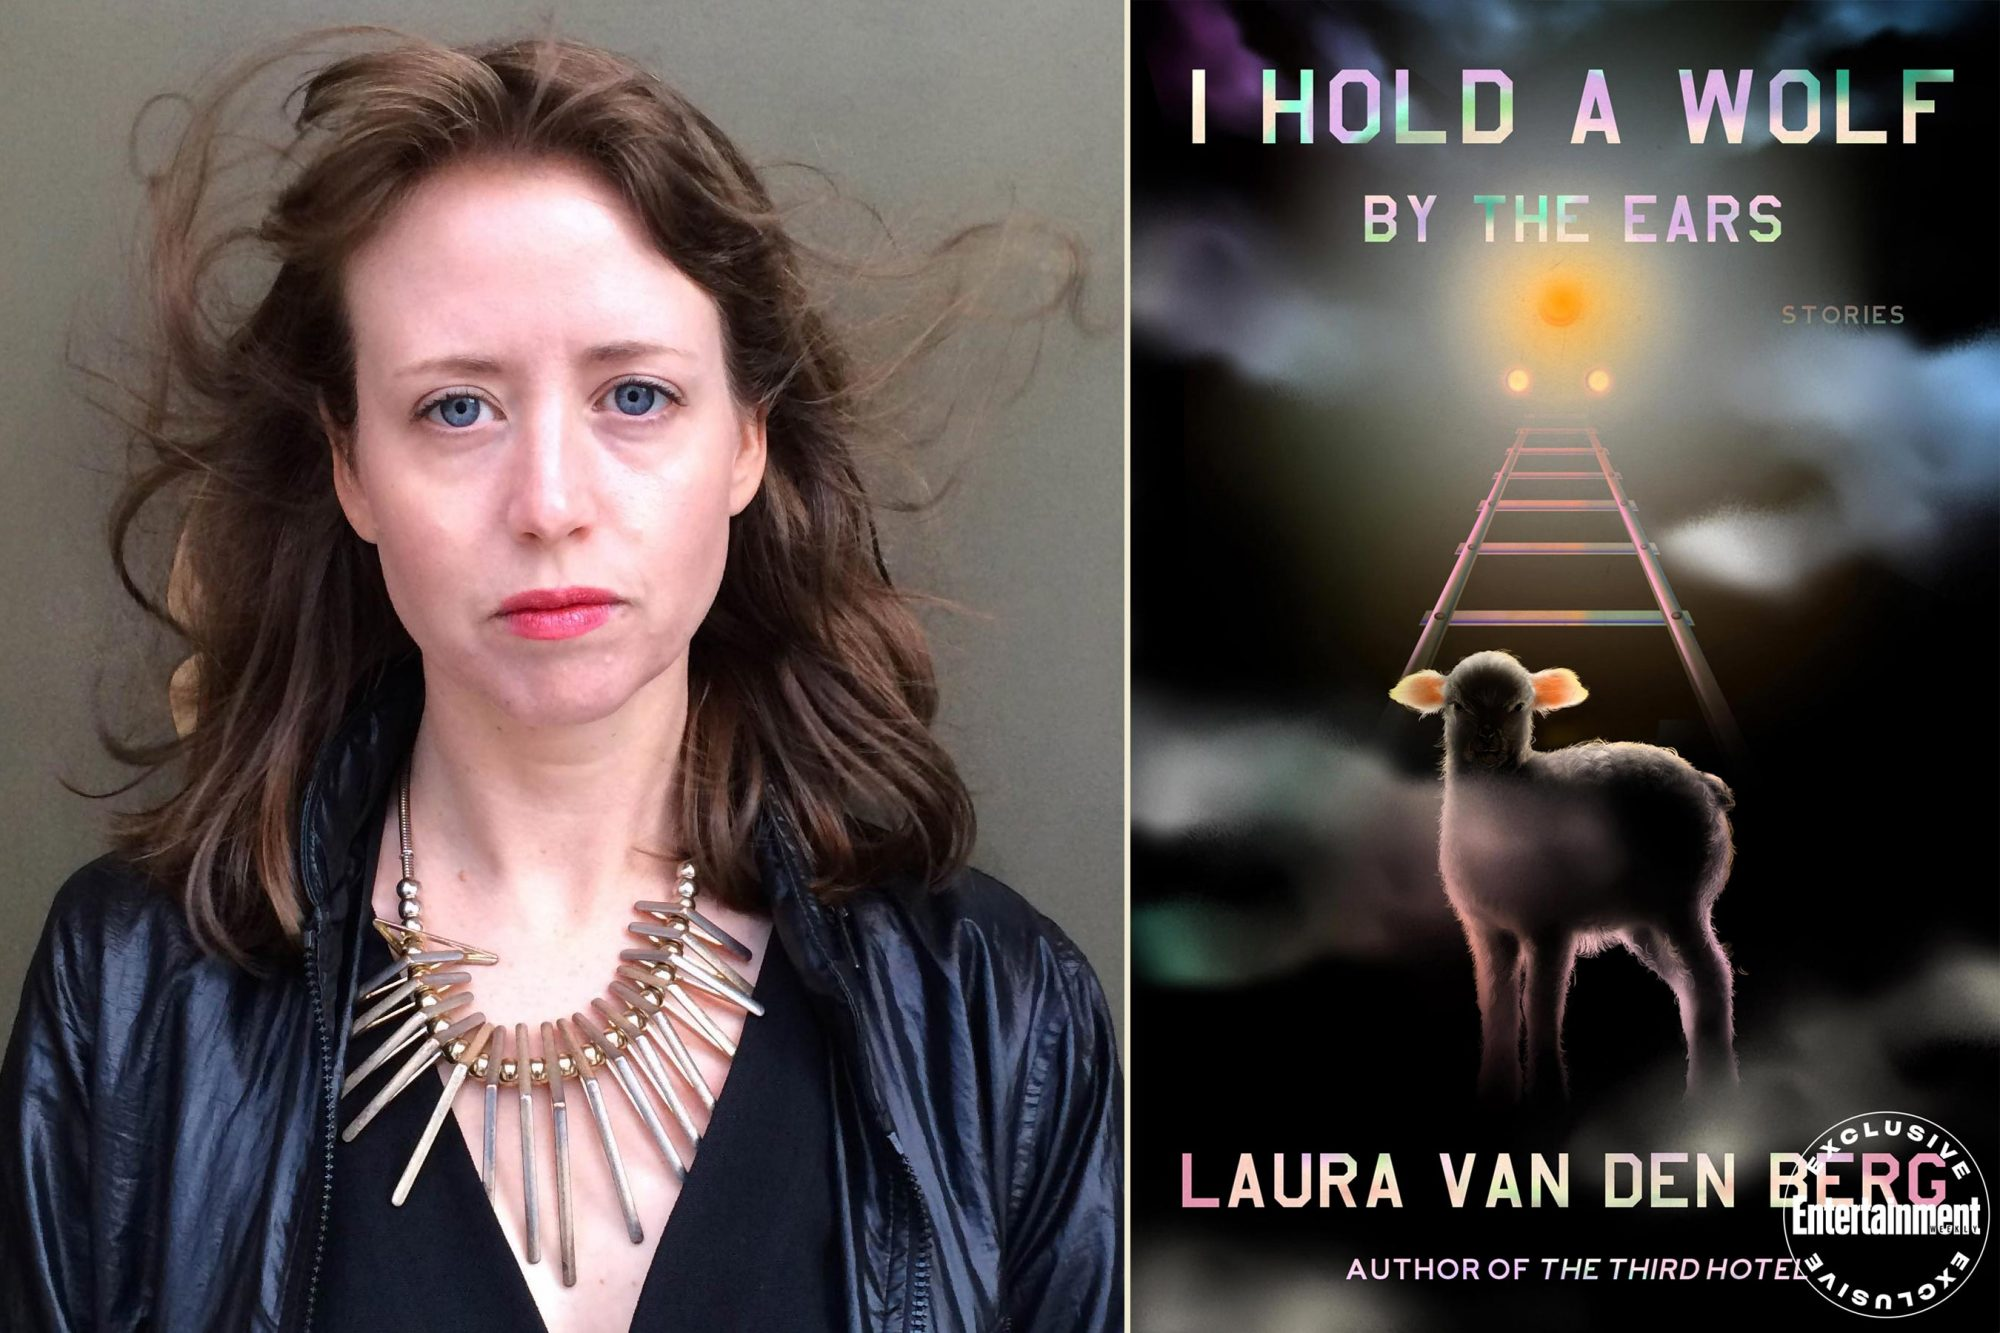 I Hold a Wolf by the Ears by Laura van den Berg